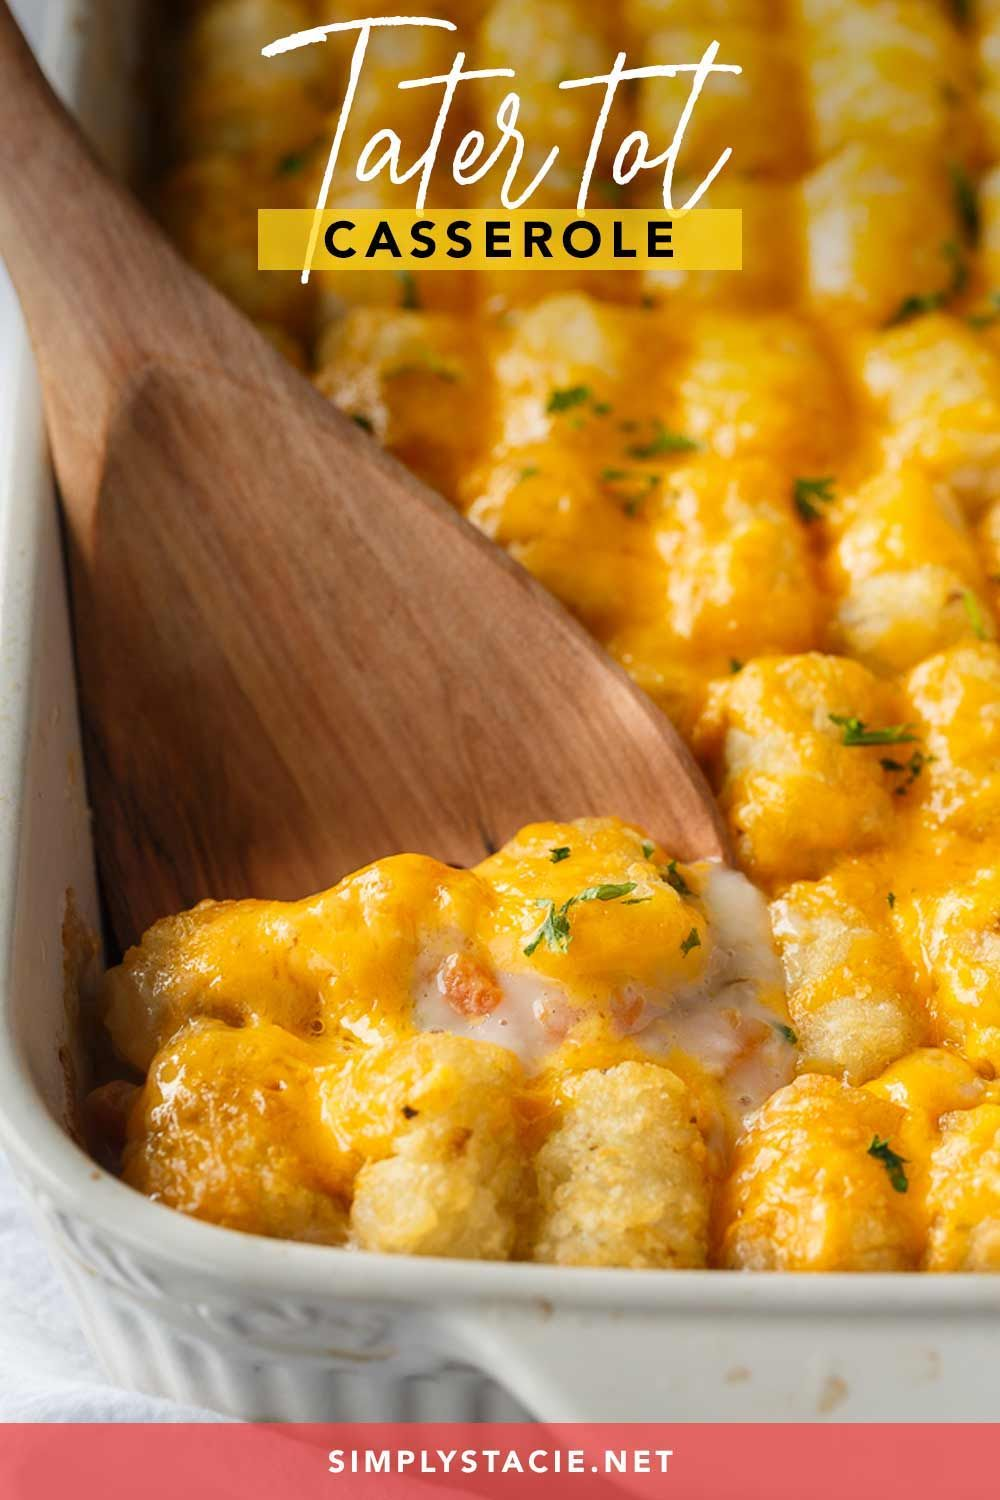 Tater Tot Casserole Recipe In 2020 Tater Tot Casserole Casserole Recipes Comfort Food Recipes Casseroles